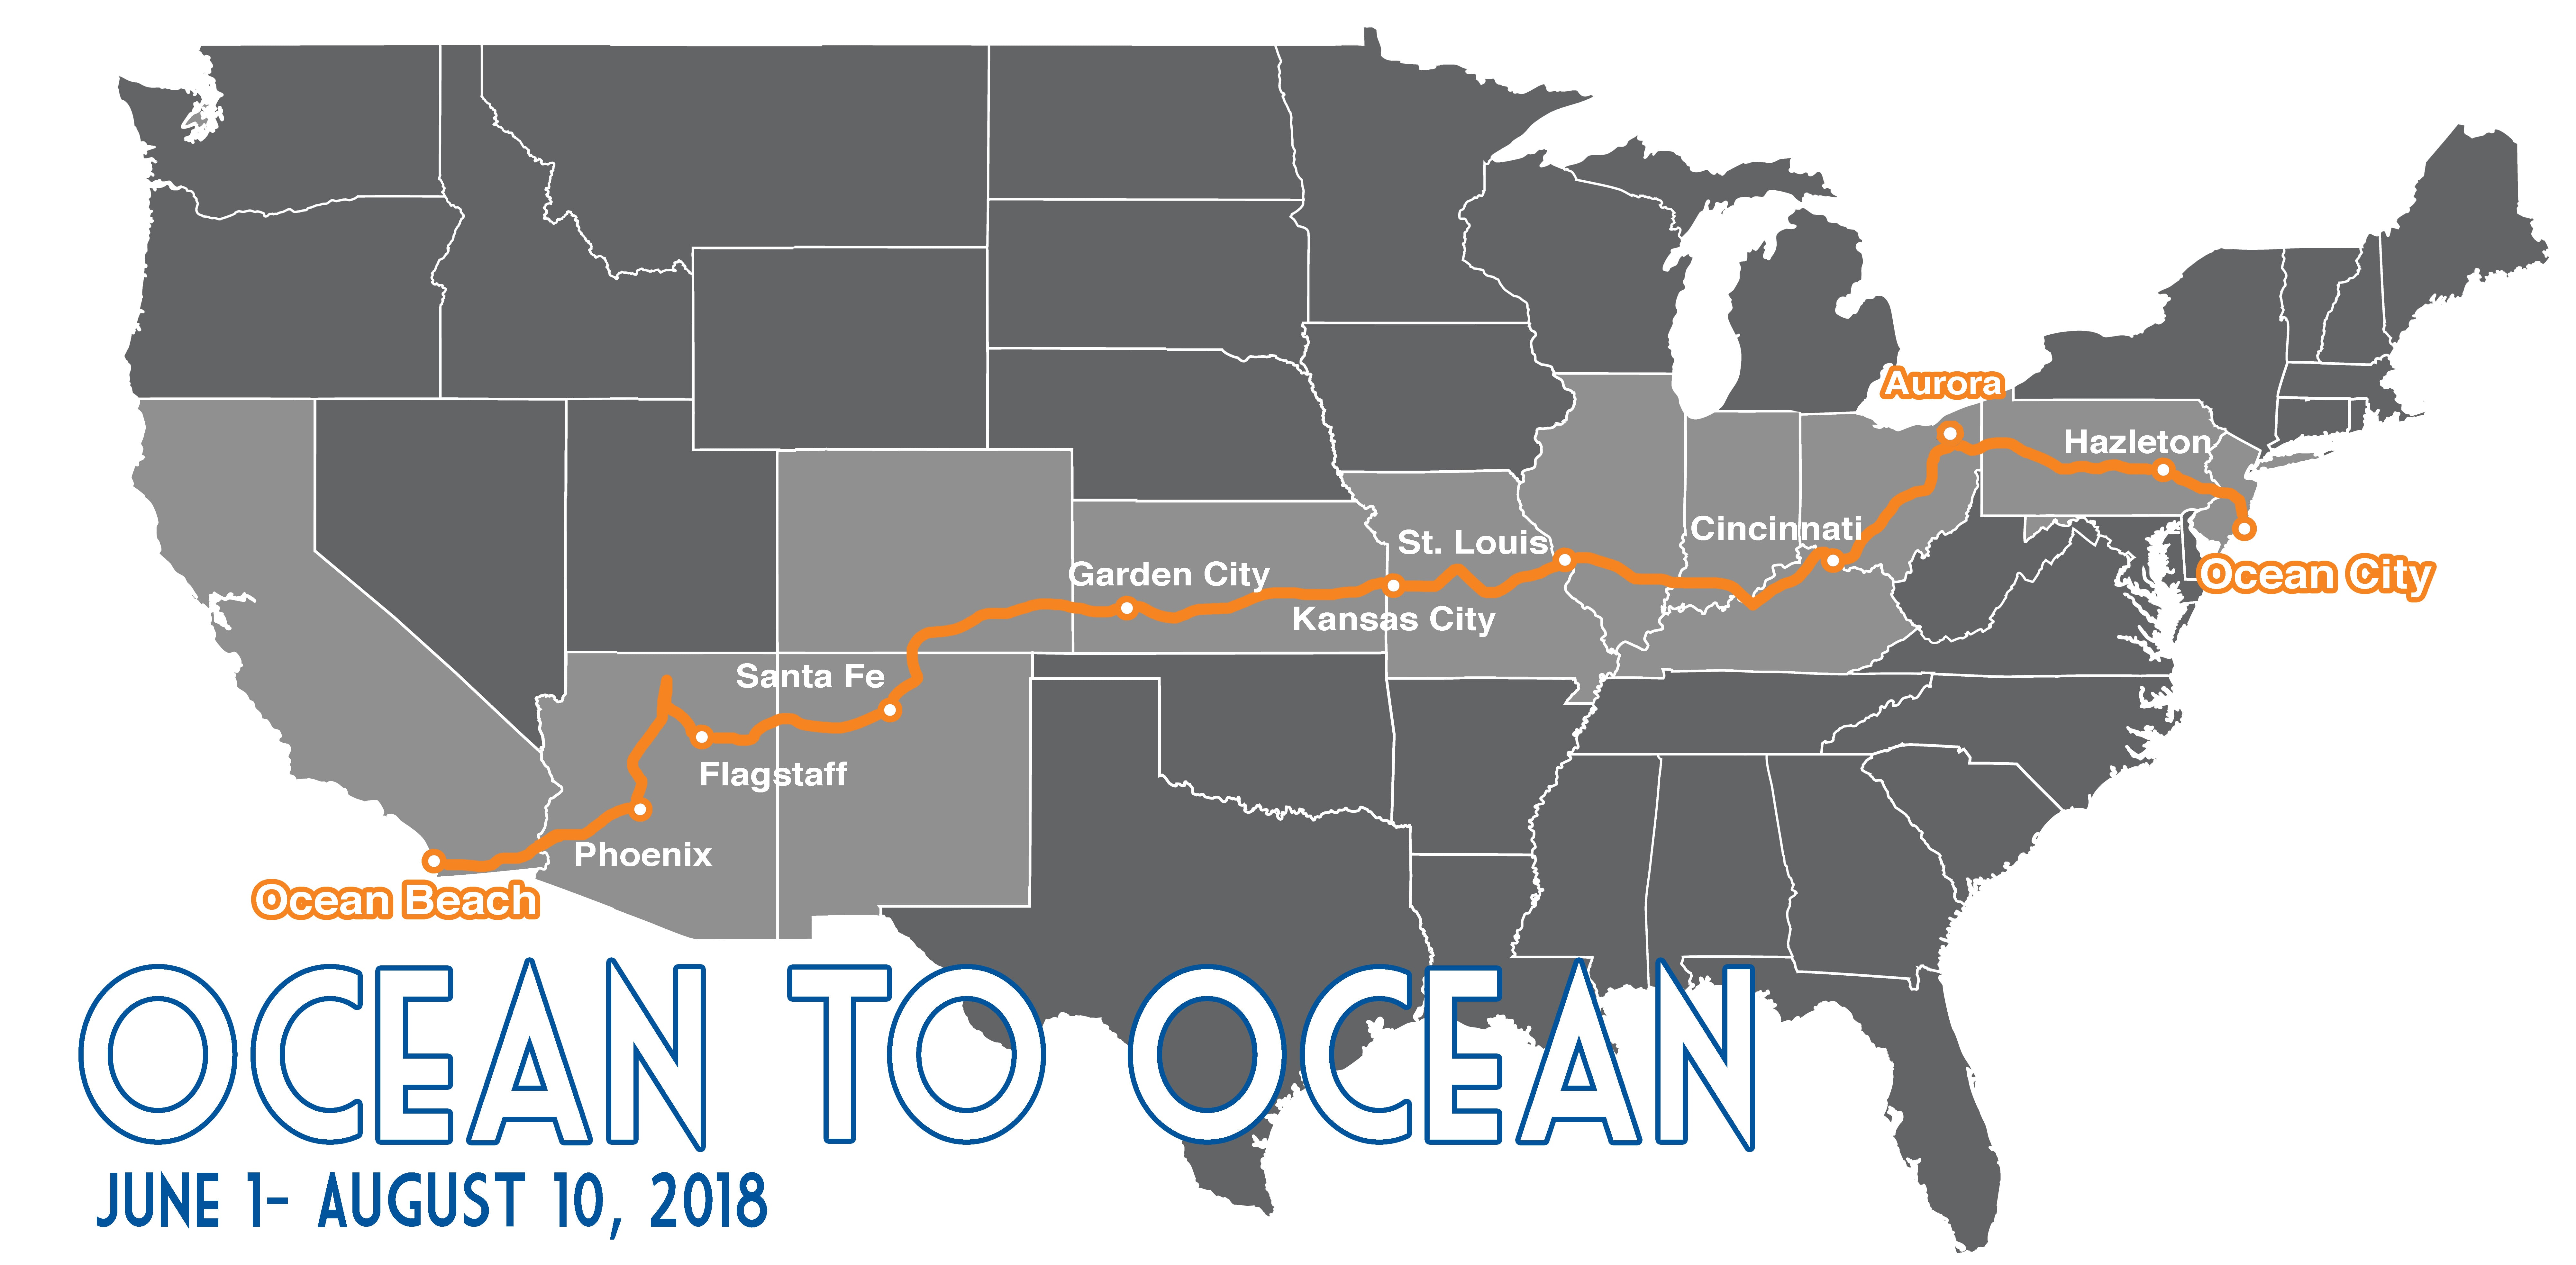 Graphic: USA Map of the Ocean to Ocean Fuller Center Bicycle Adventure 2018